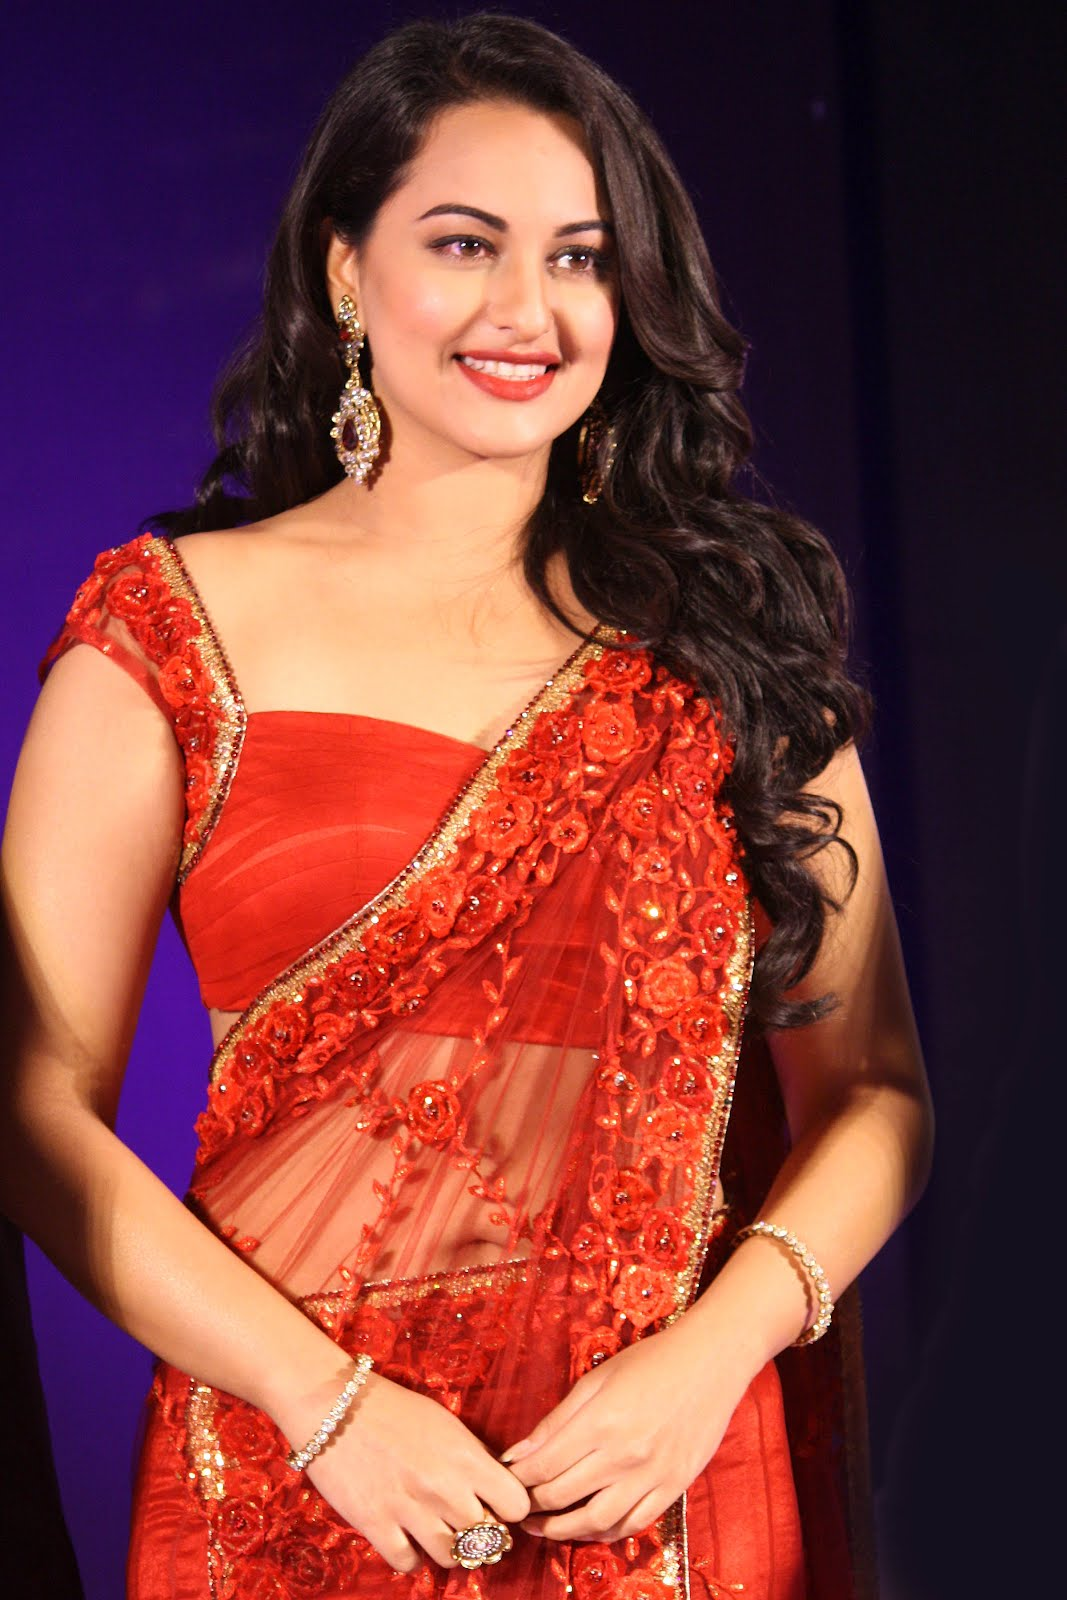 Sonakshi Sinha Looks Sexy In Red Saree At The India Bridal Fashion Week 2012.